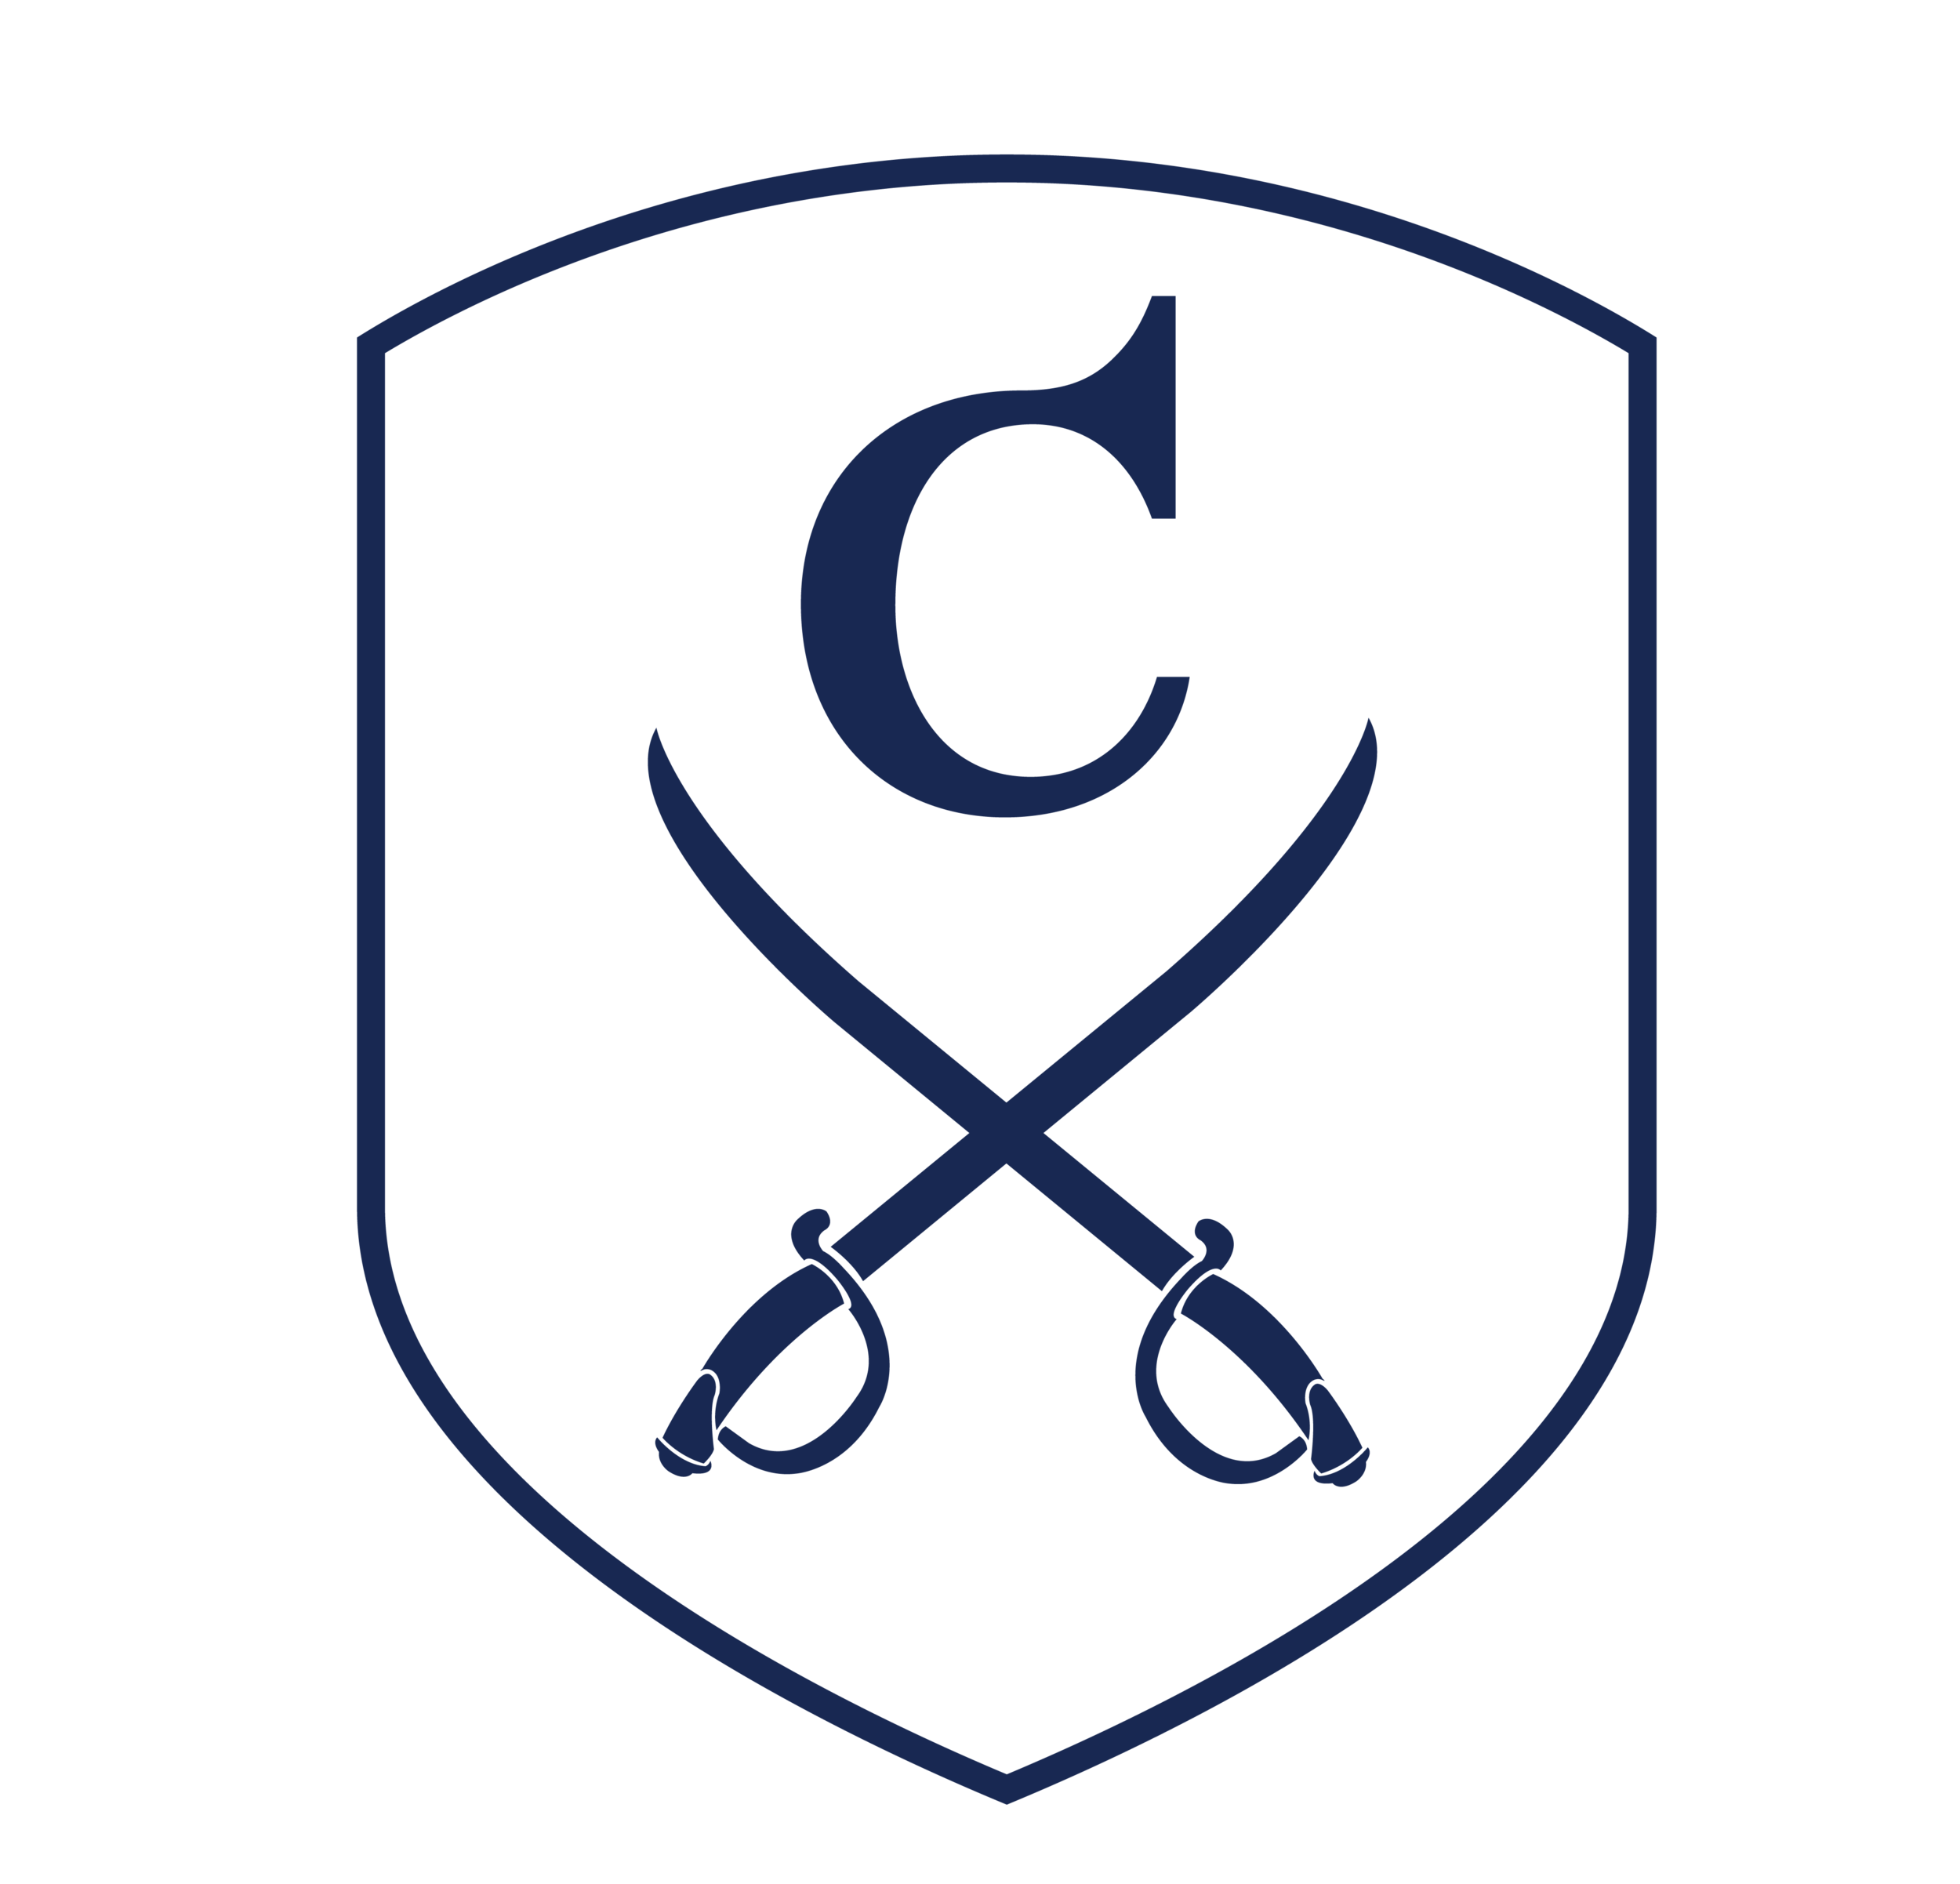 Cavalry_Icons_062317_Final-01.png